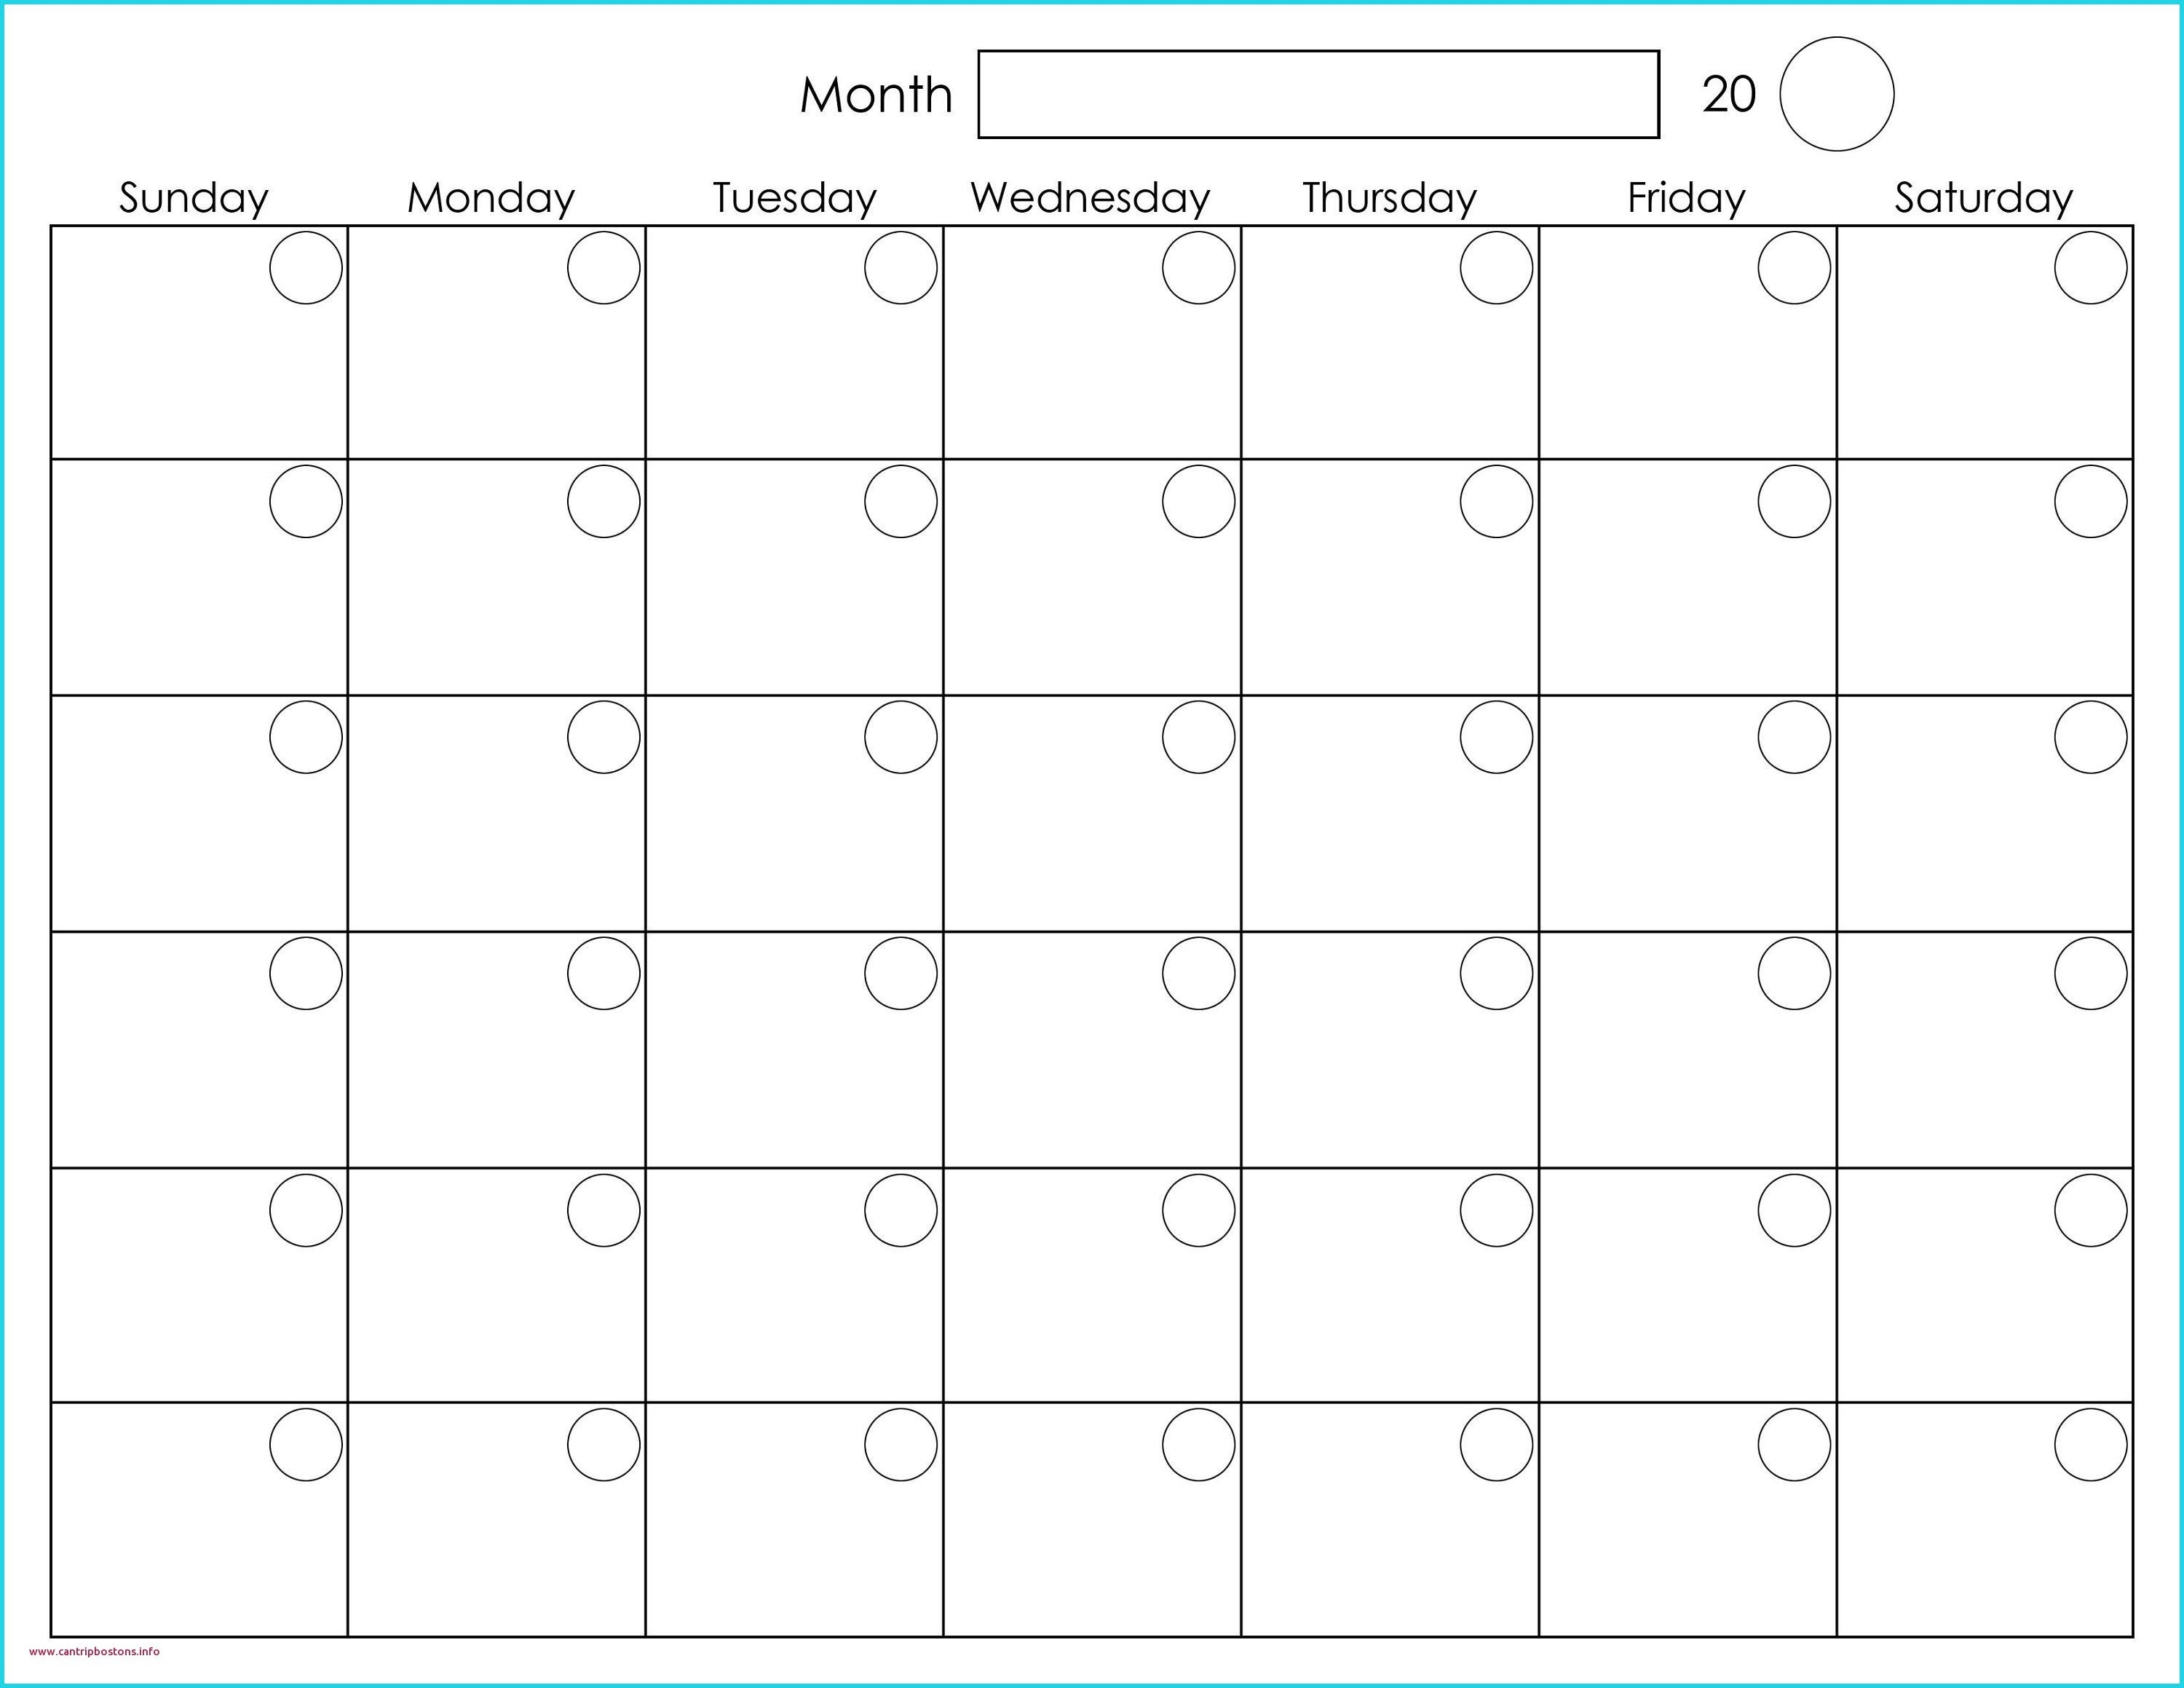 Month At A Glance Blank Calendar Template Lovely Printable-Month At A Glance Blank Calendar Printable